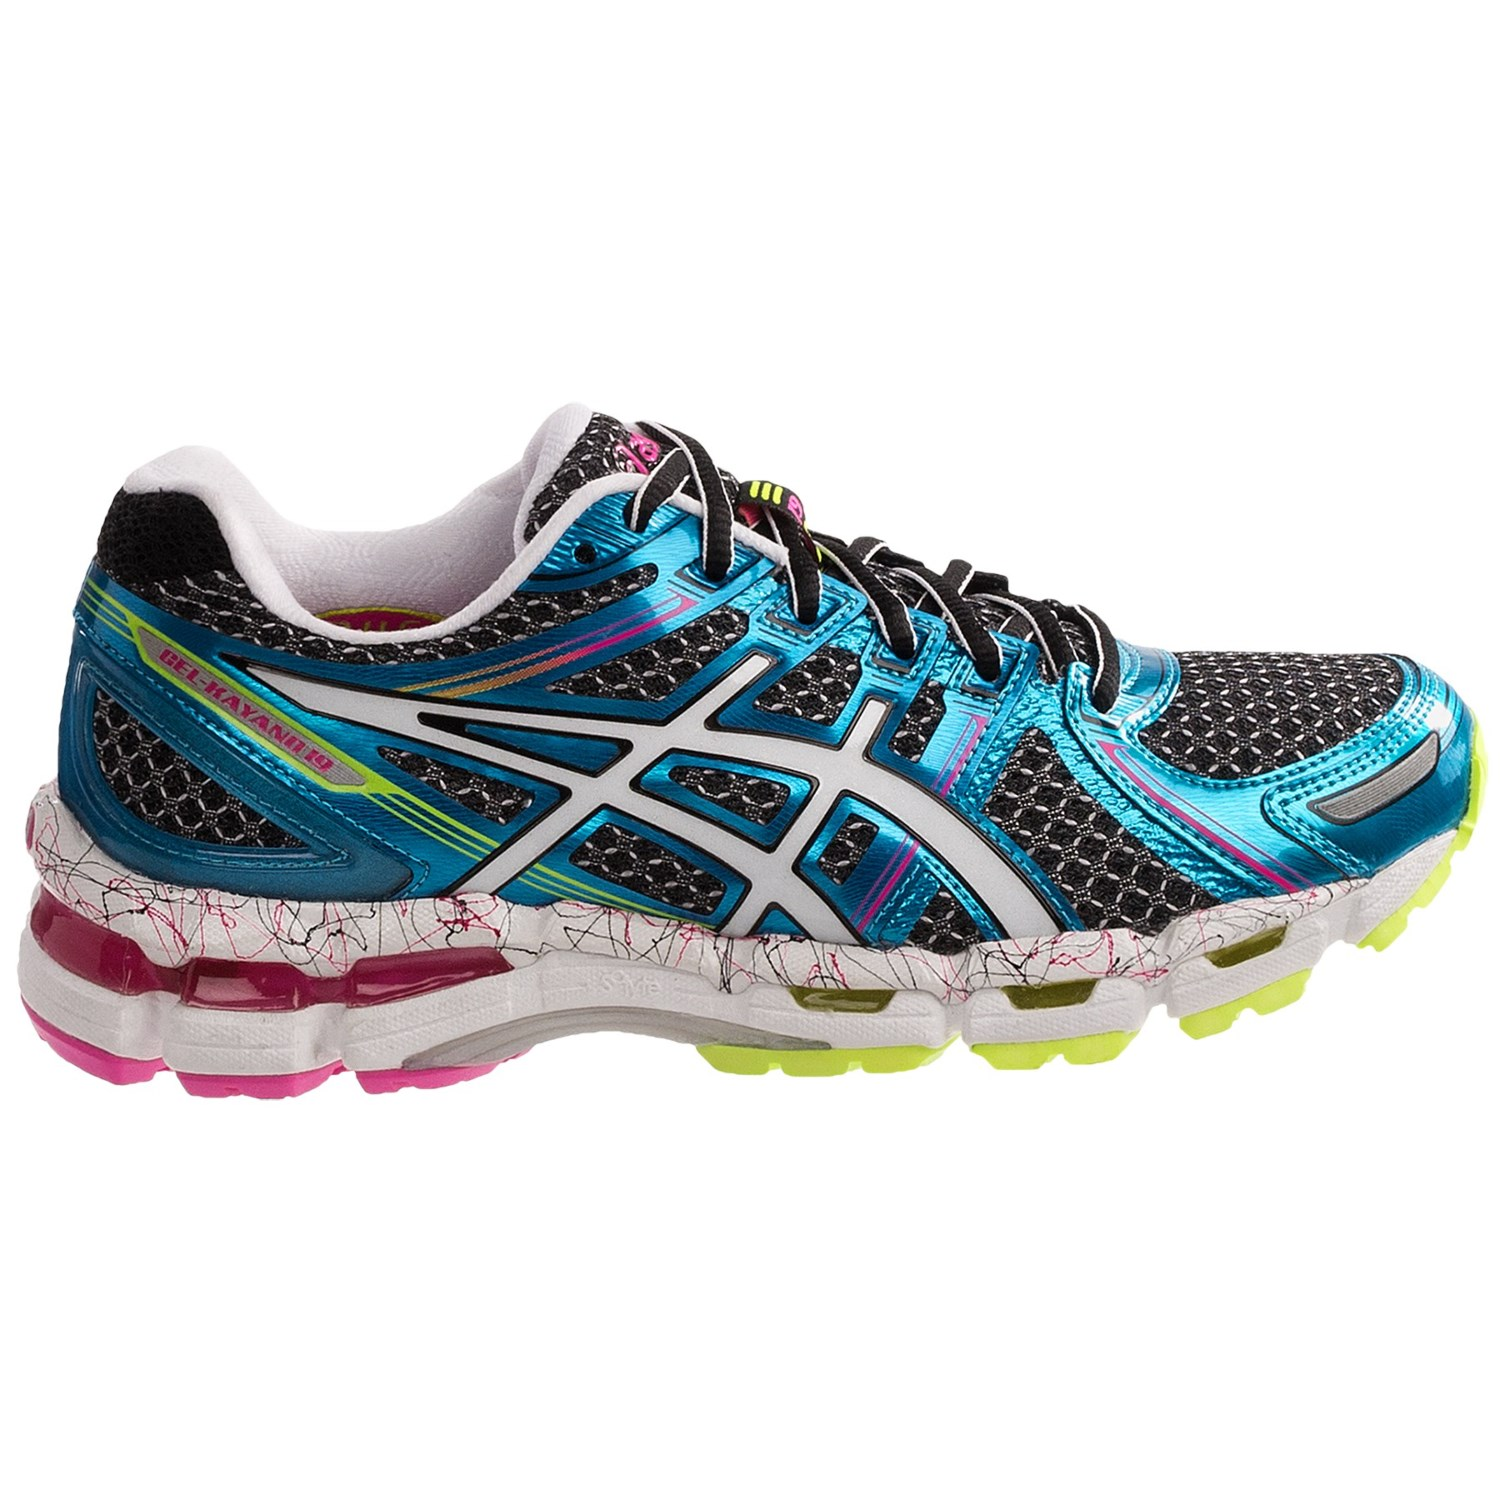 Running Shoes Clearance Australia